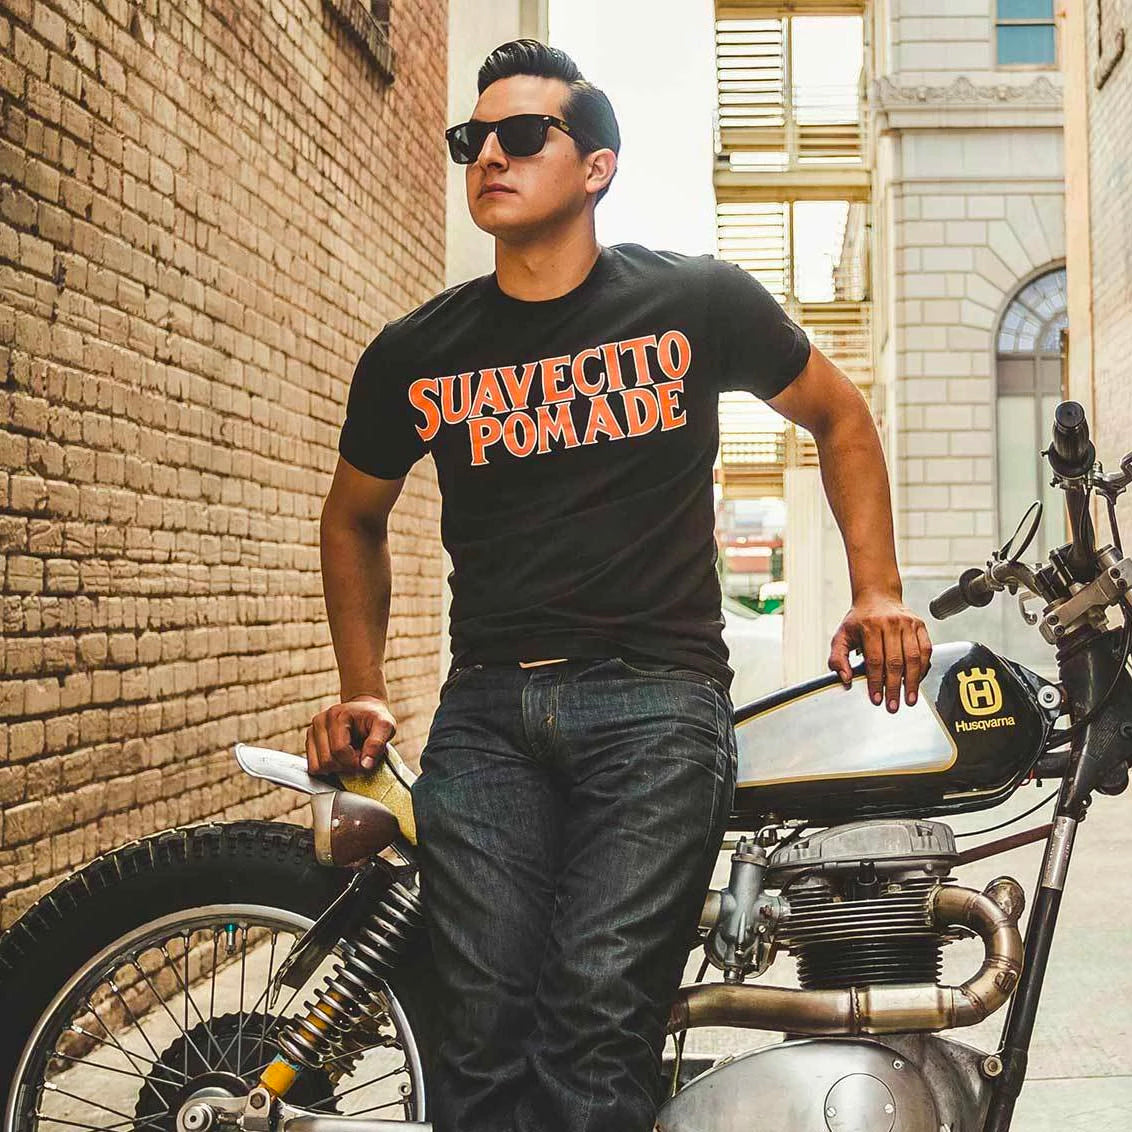 You man sitting on motor cycle wearing a Suavecito shirt